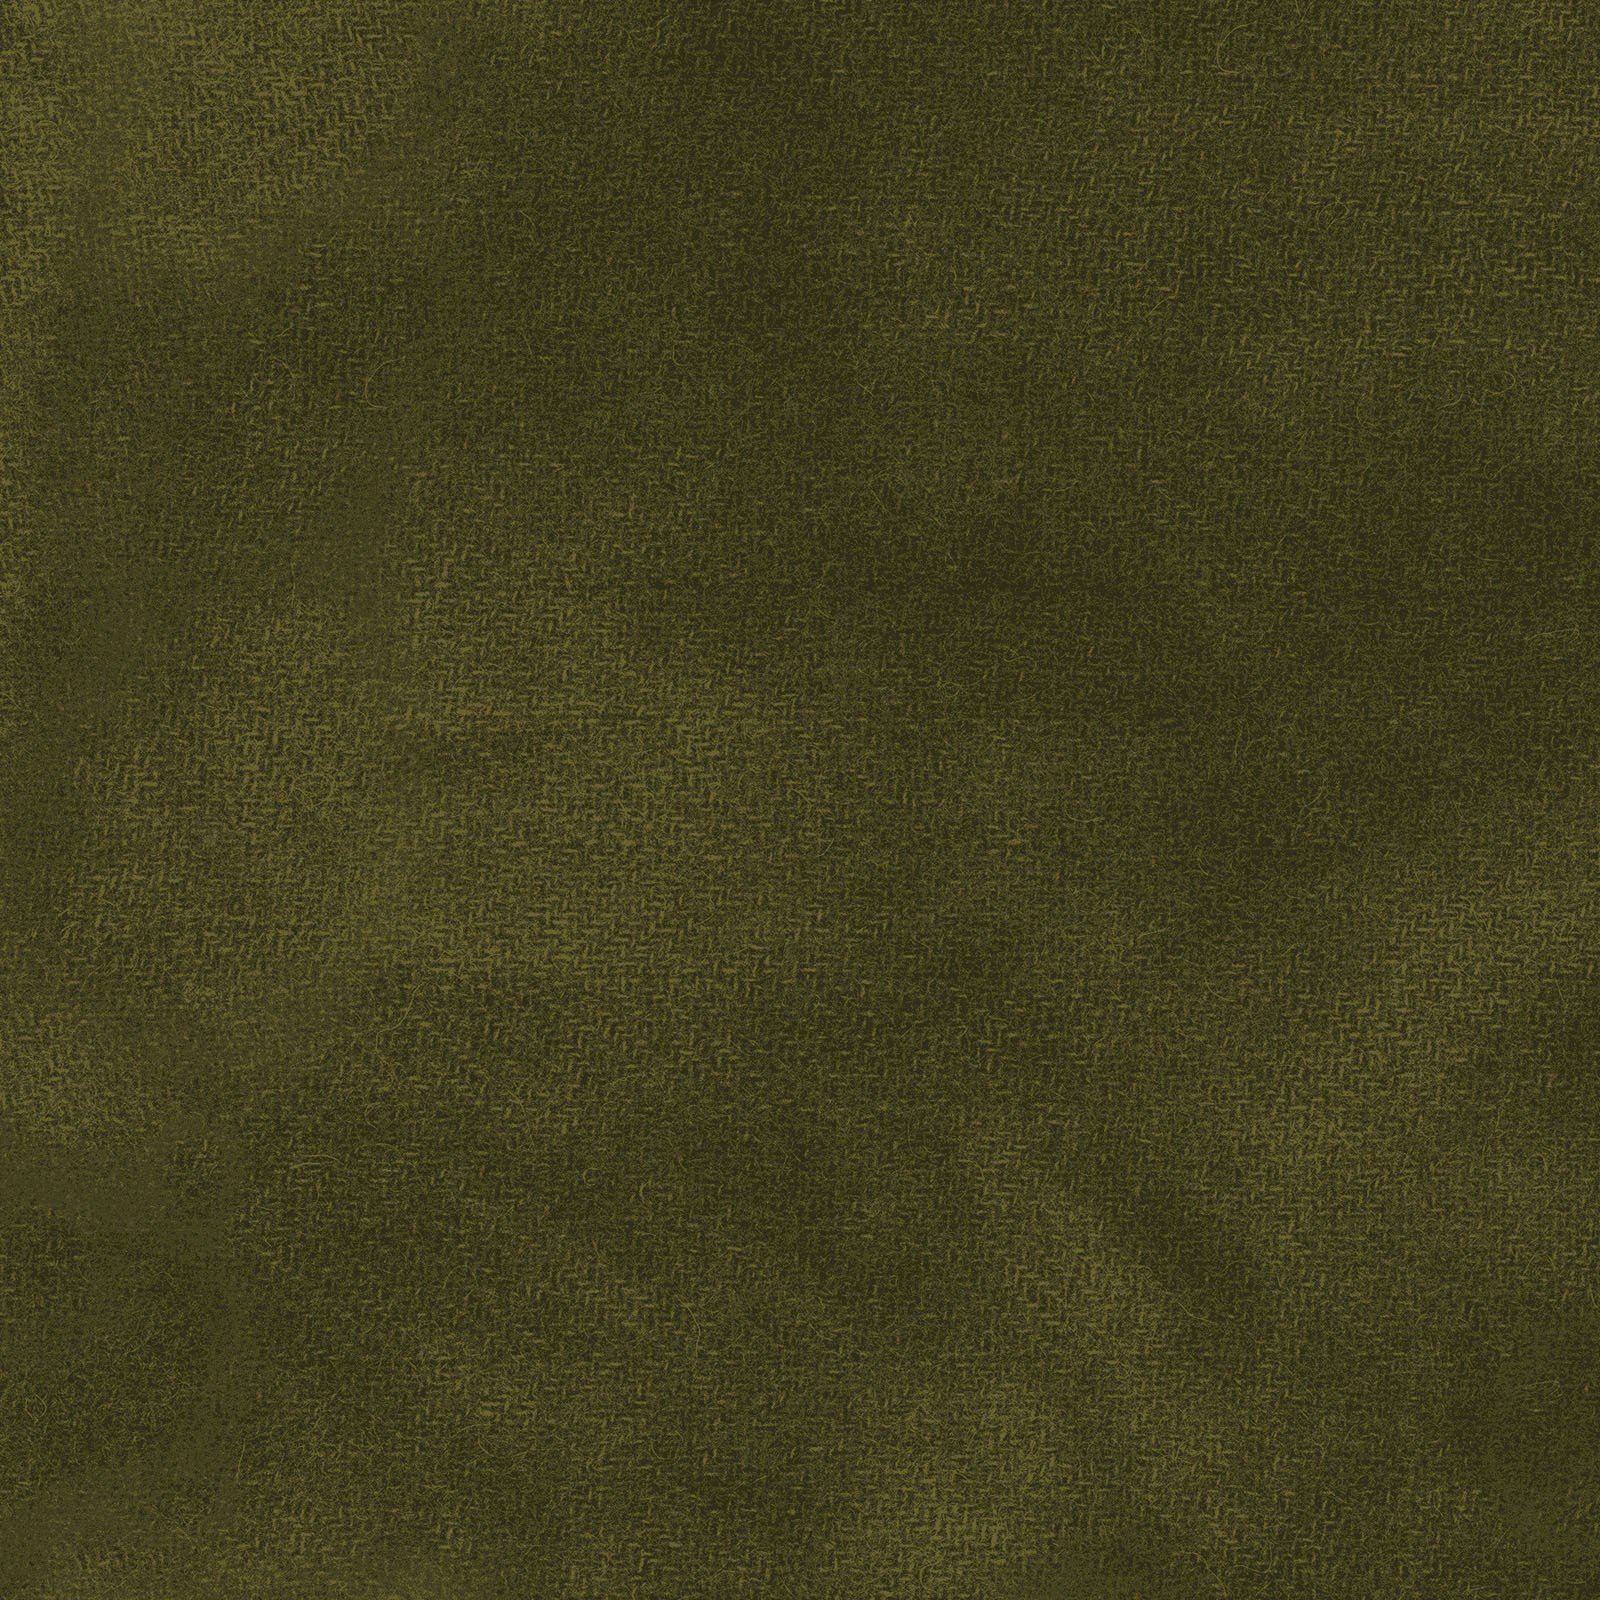 Color Wash Woolies Flannel - Shady Grove (Remnant: 1-2/3 yds)